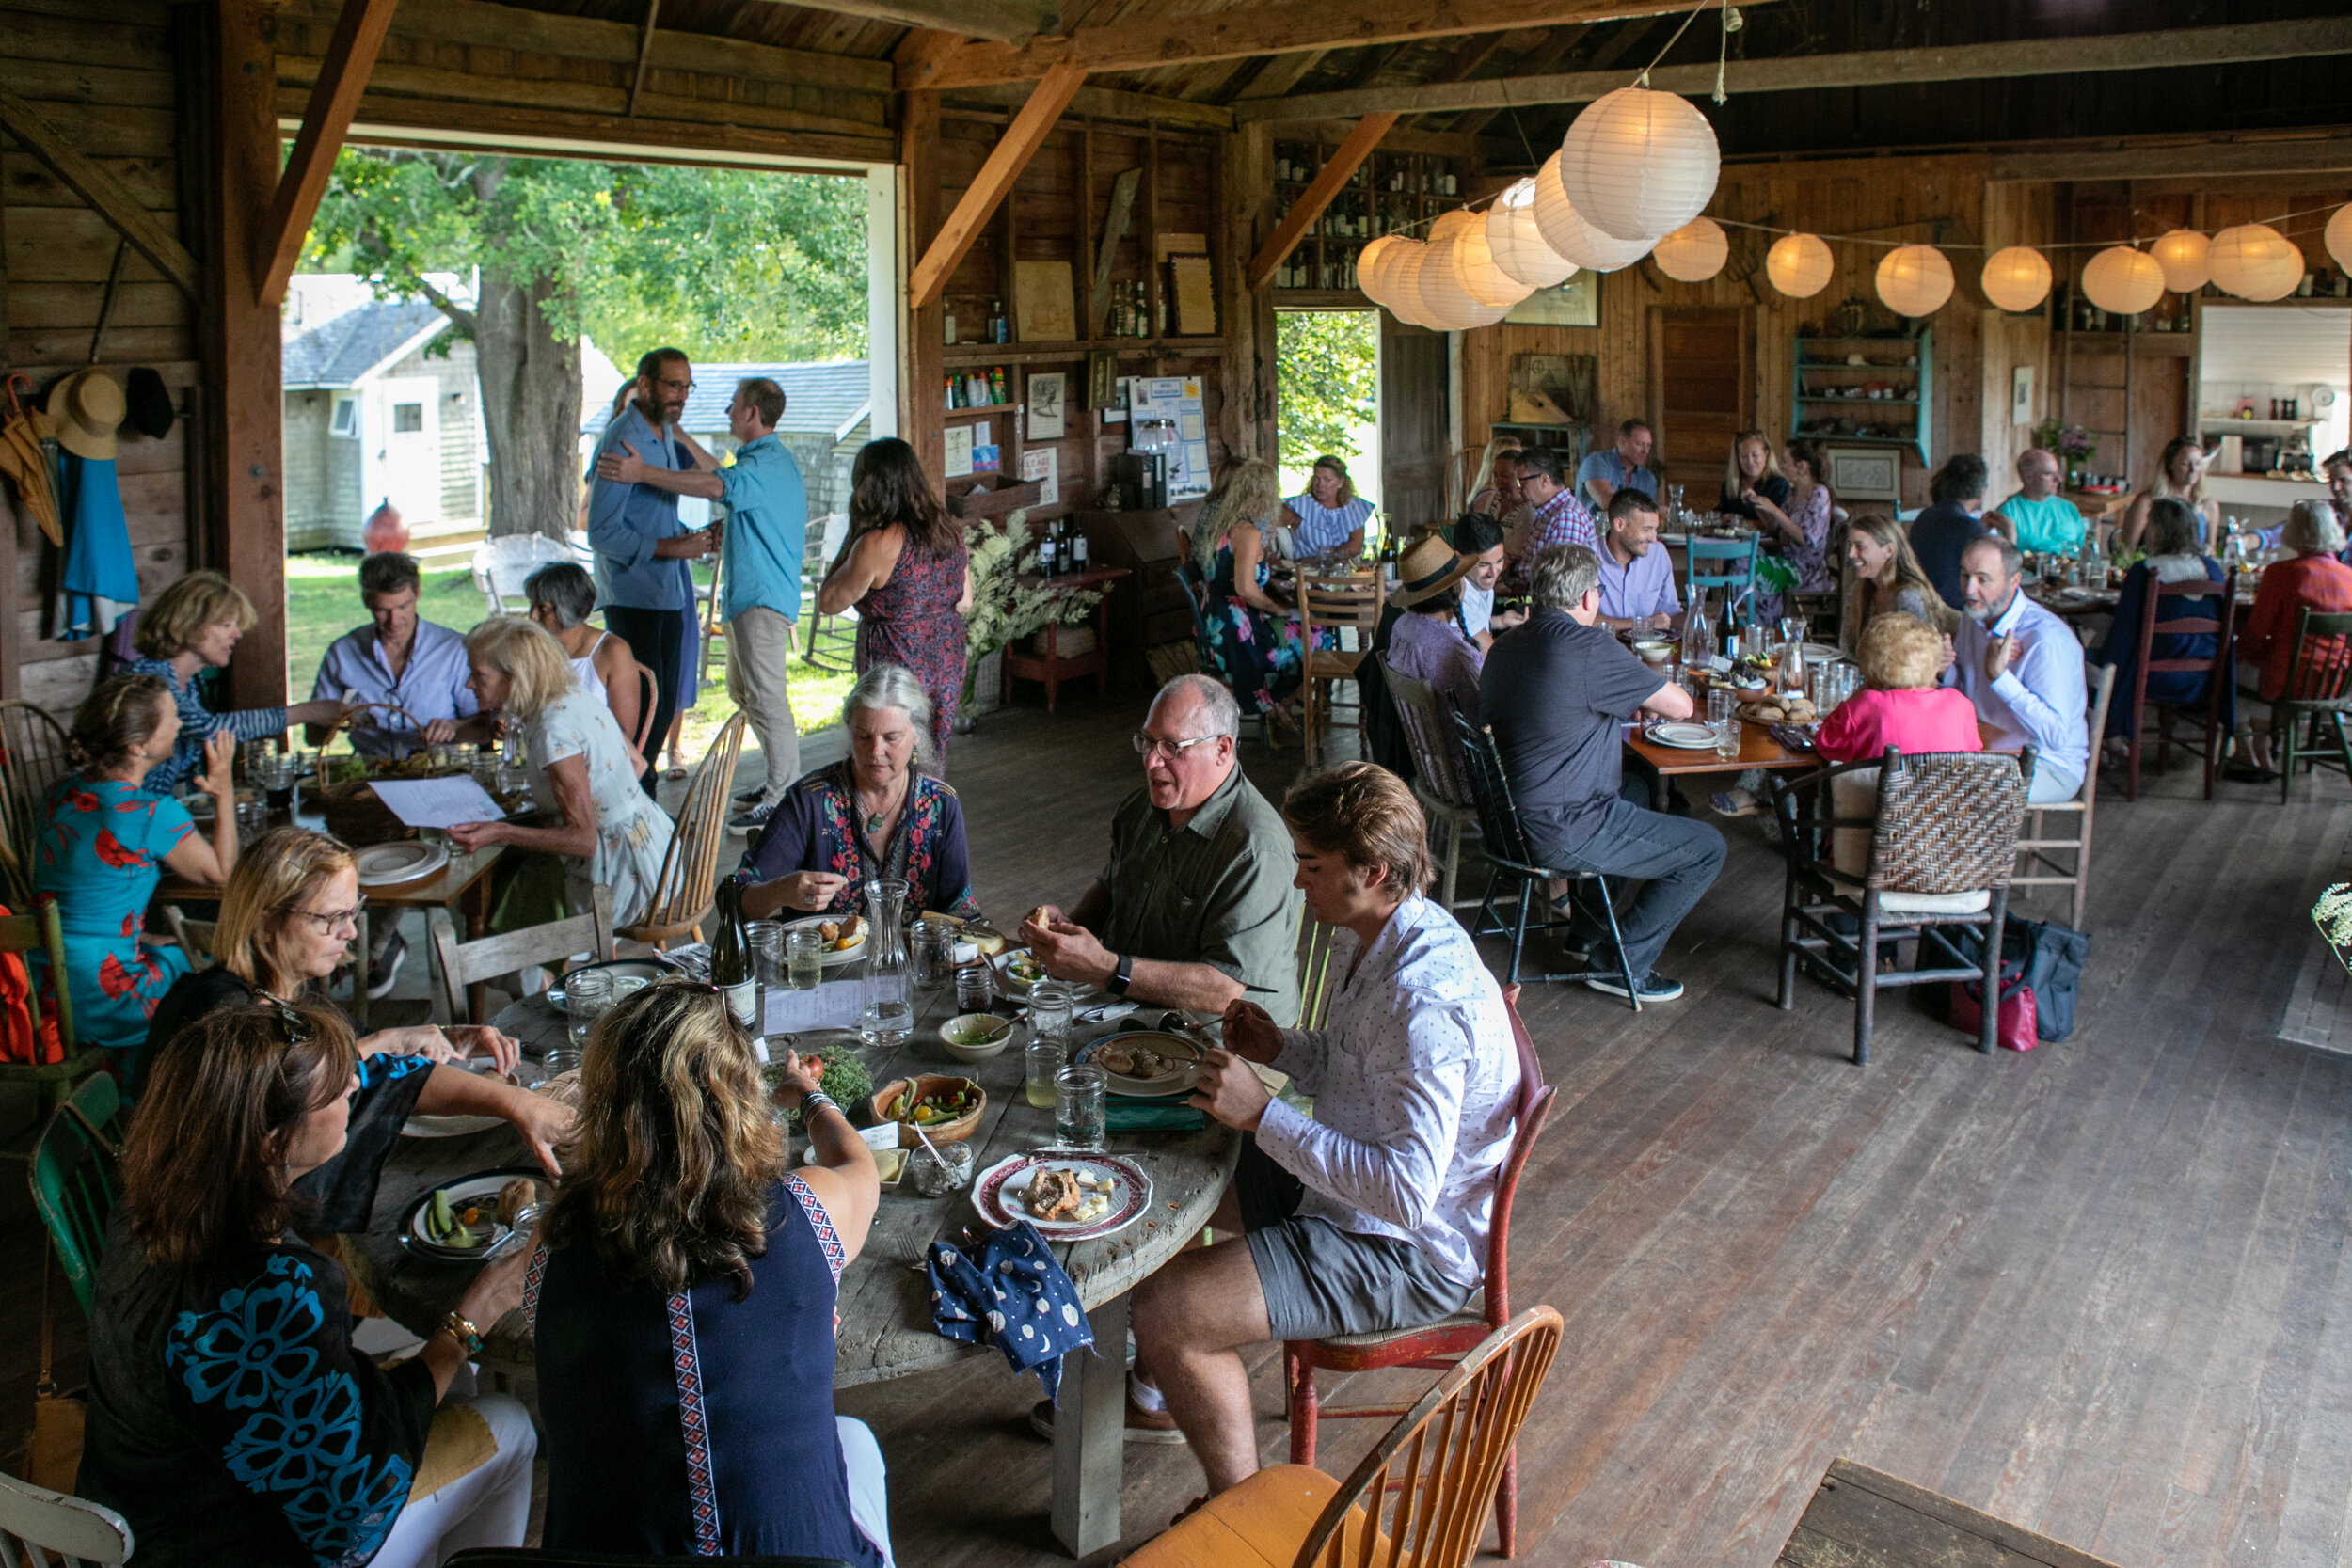 Dinner with Dr. Ruth at the Barn House. Photo by Joshua Robinson-White.